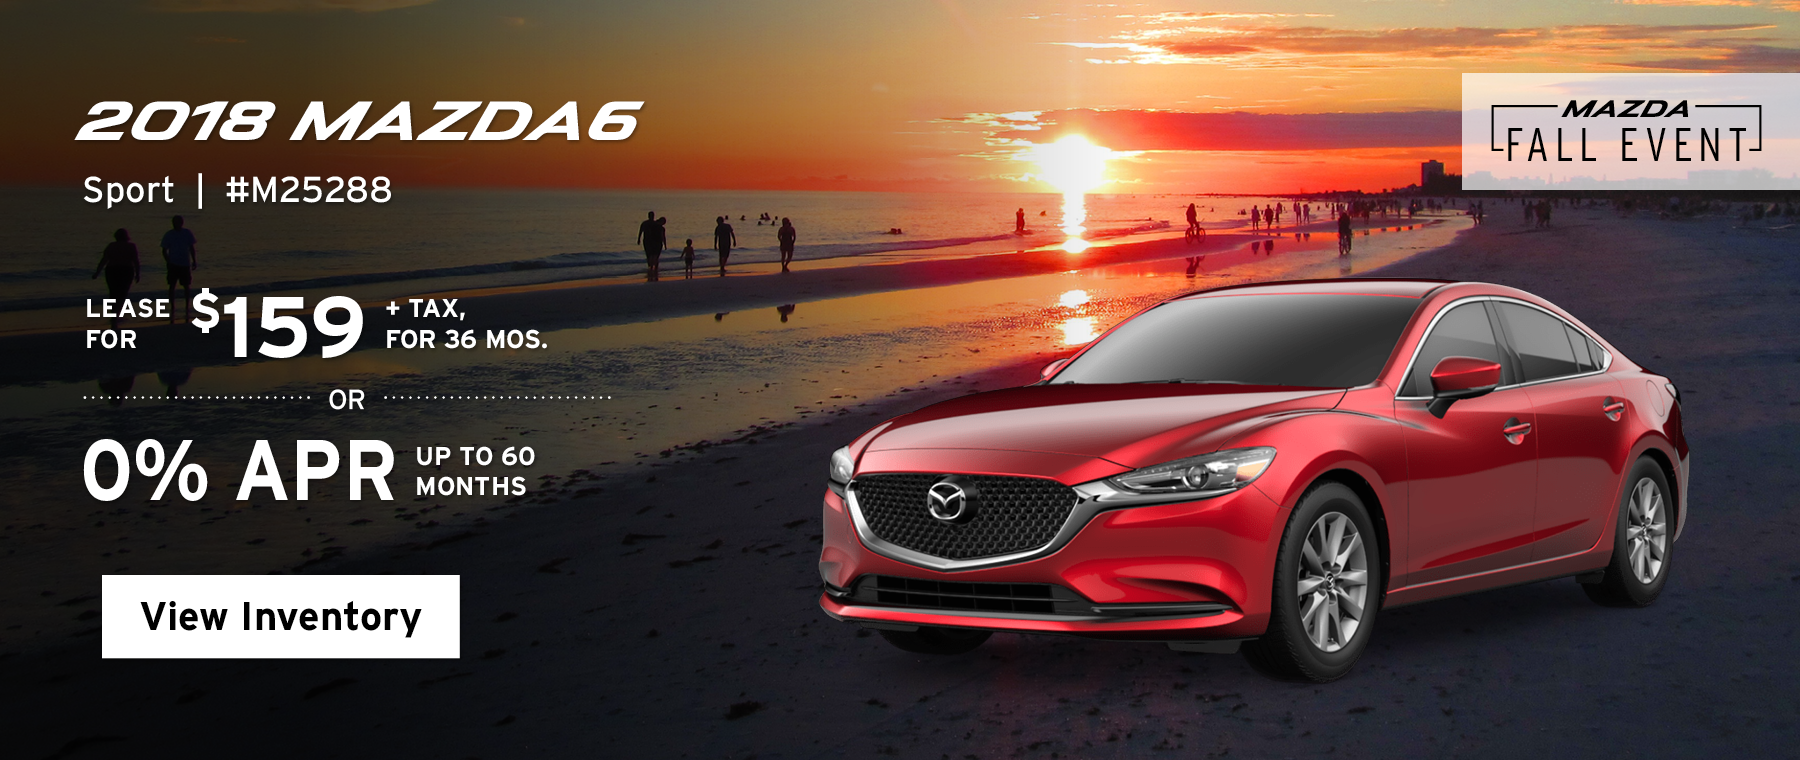 Lease the 2018 Mazda6 Sport for $159, plus tax for 36 months, or 0% APR up to 60 months.